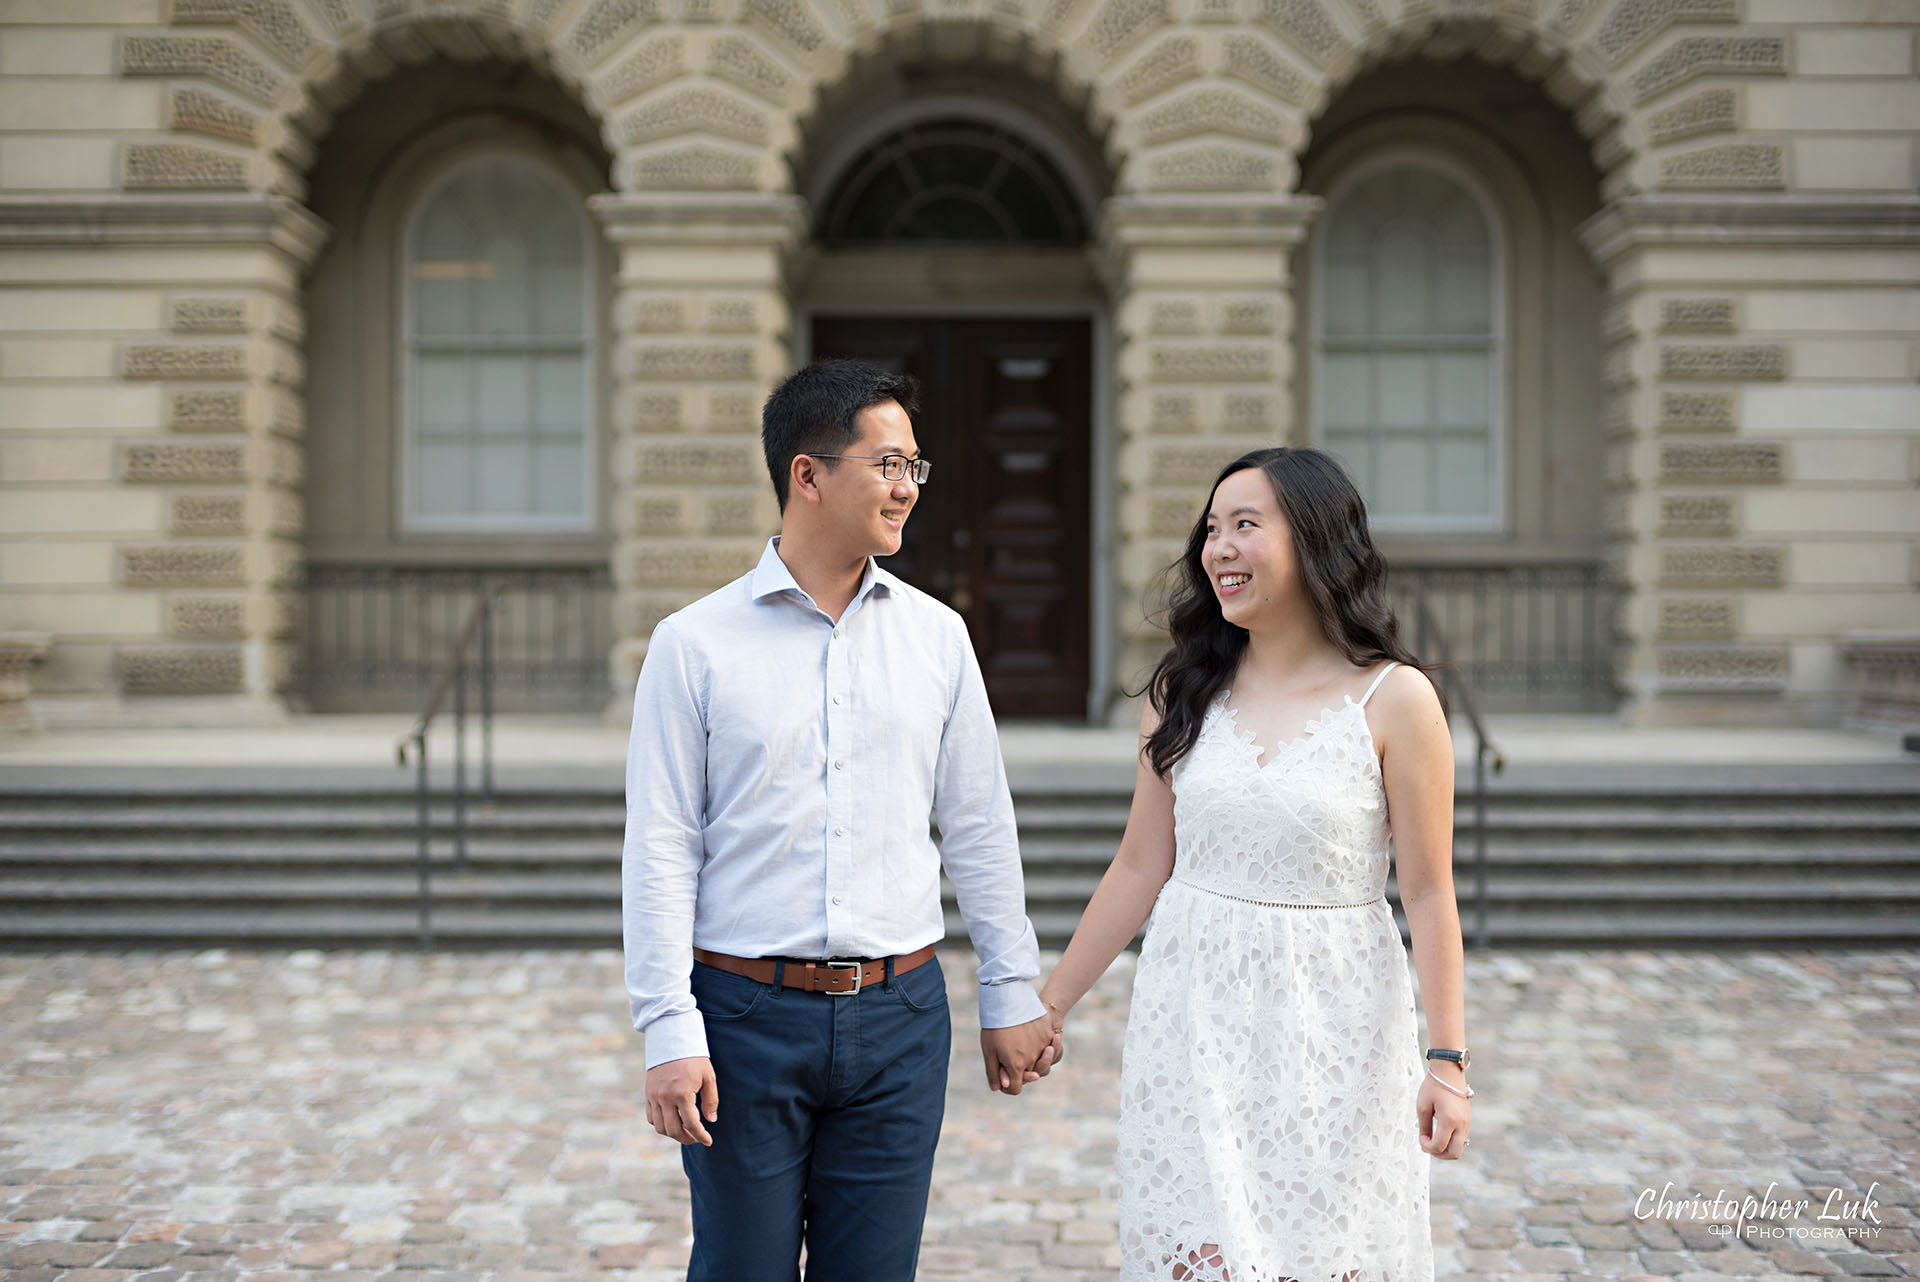 Christopher Luk Wedding Photographer Osgoode Hall Toronto Bride Groom Main Historic Building Front Cobblestone Holding Hands Walking Together Christopher Luk Wedding Photographer Osgoode Hall Toronto Bride Groom Main Historic Building Front Cobblestone Holding Hands Walking Together Looking at Each Other Portrait Natural Candid Photojournalistic